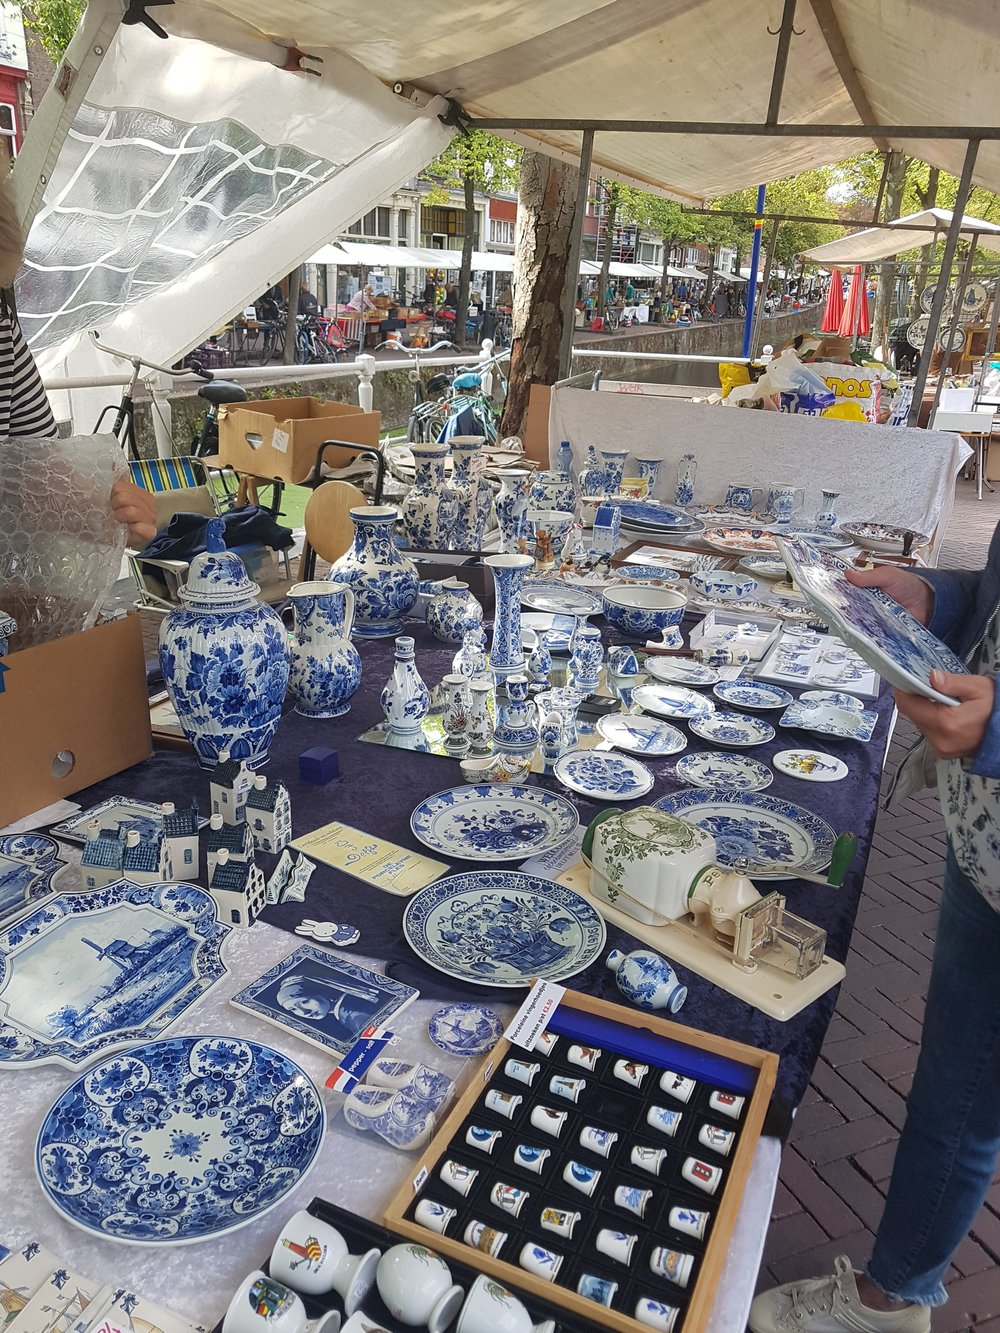 delftware at the market in Delft